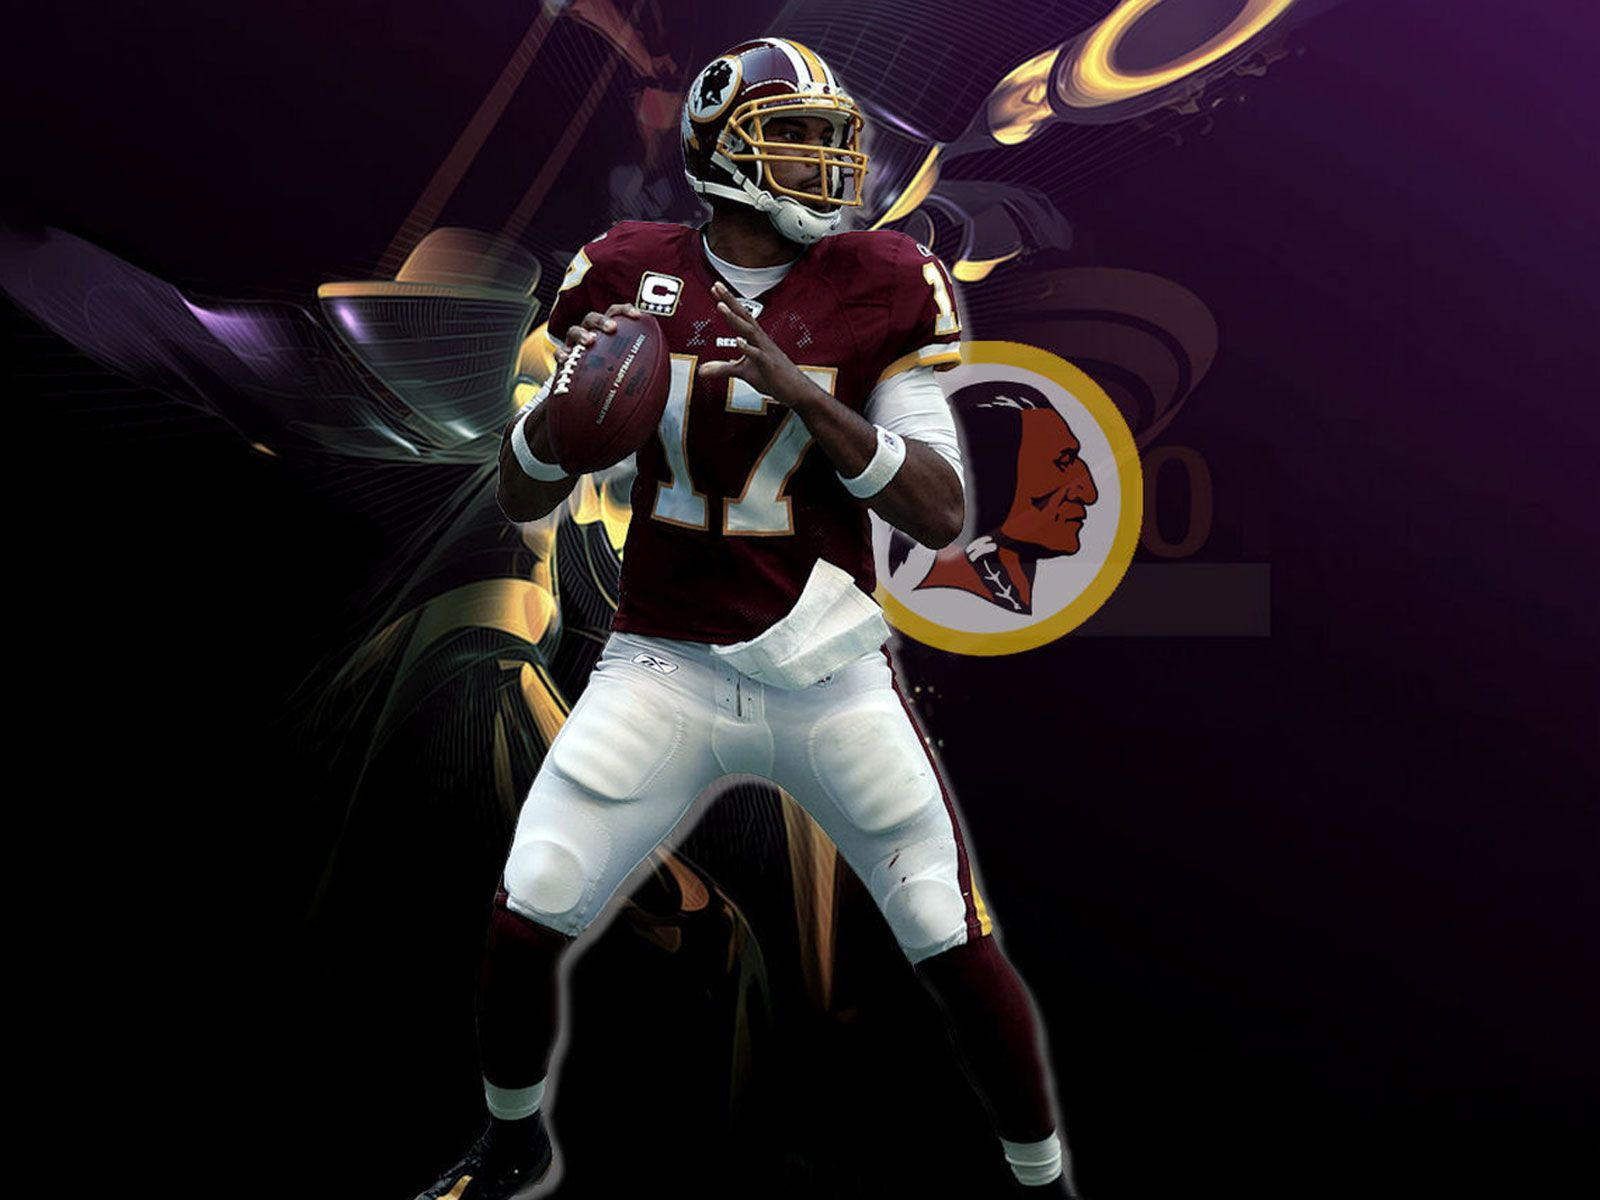 Football Wallpaper Nfl